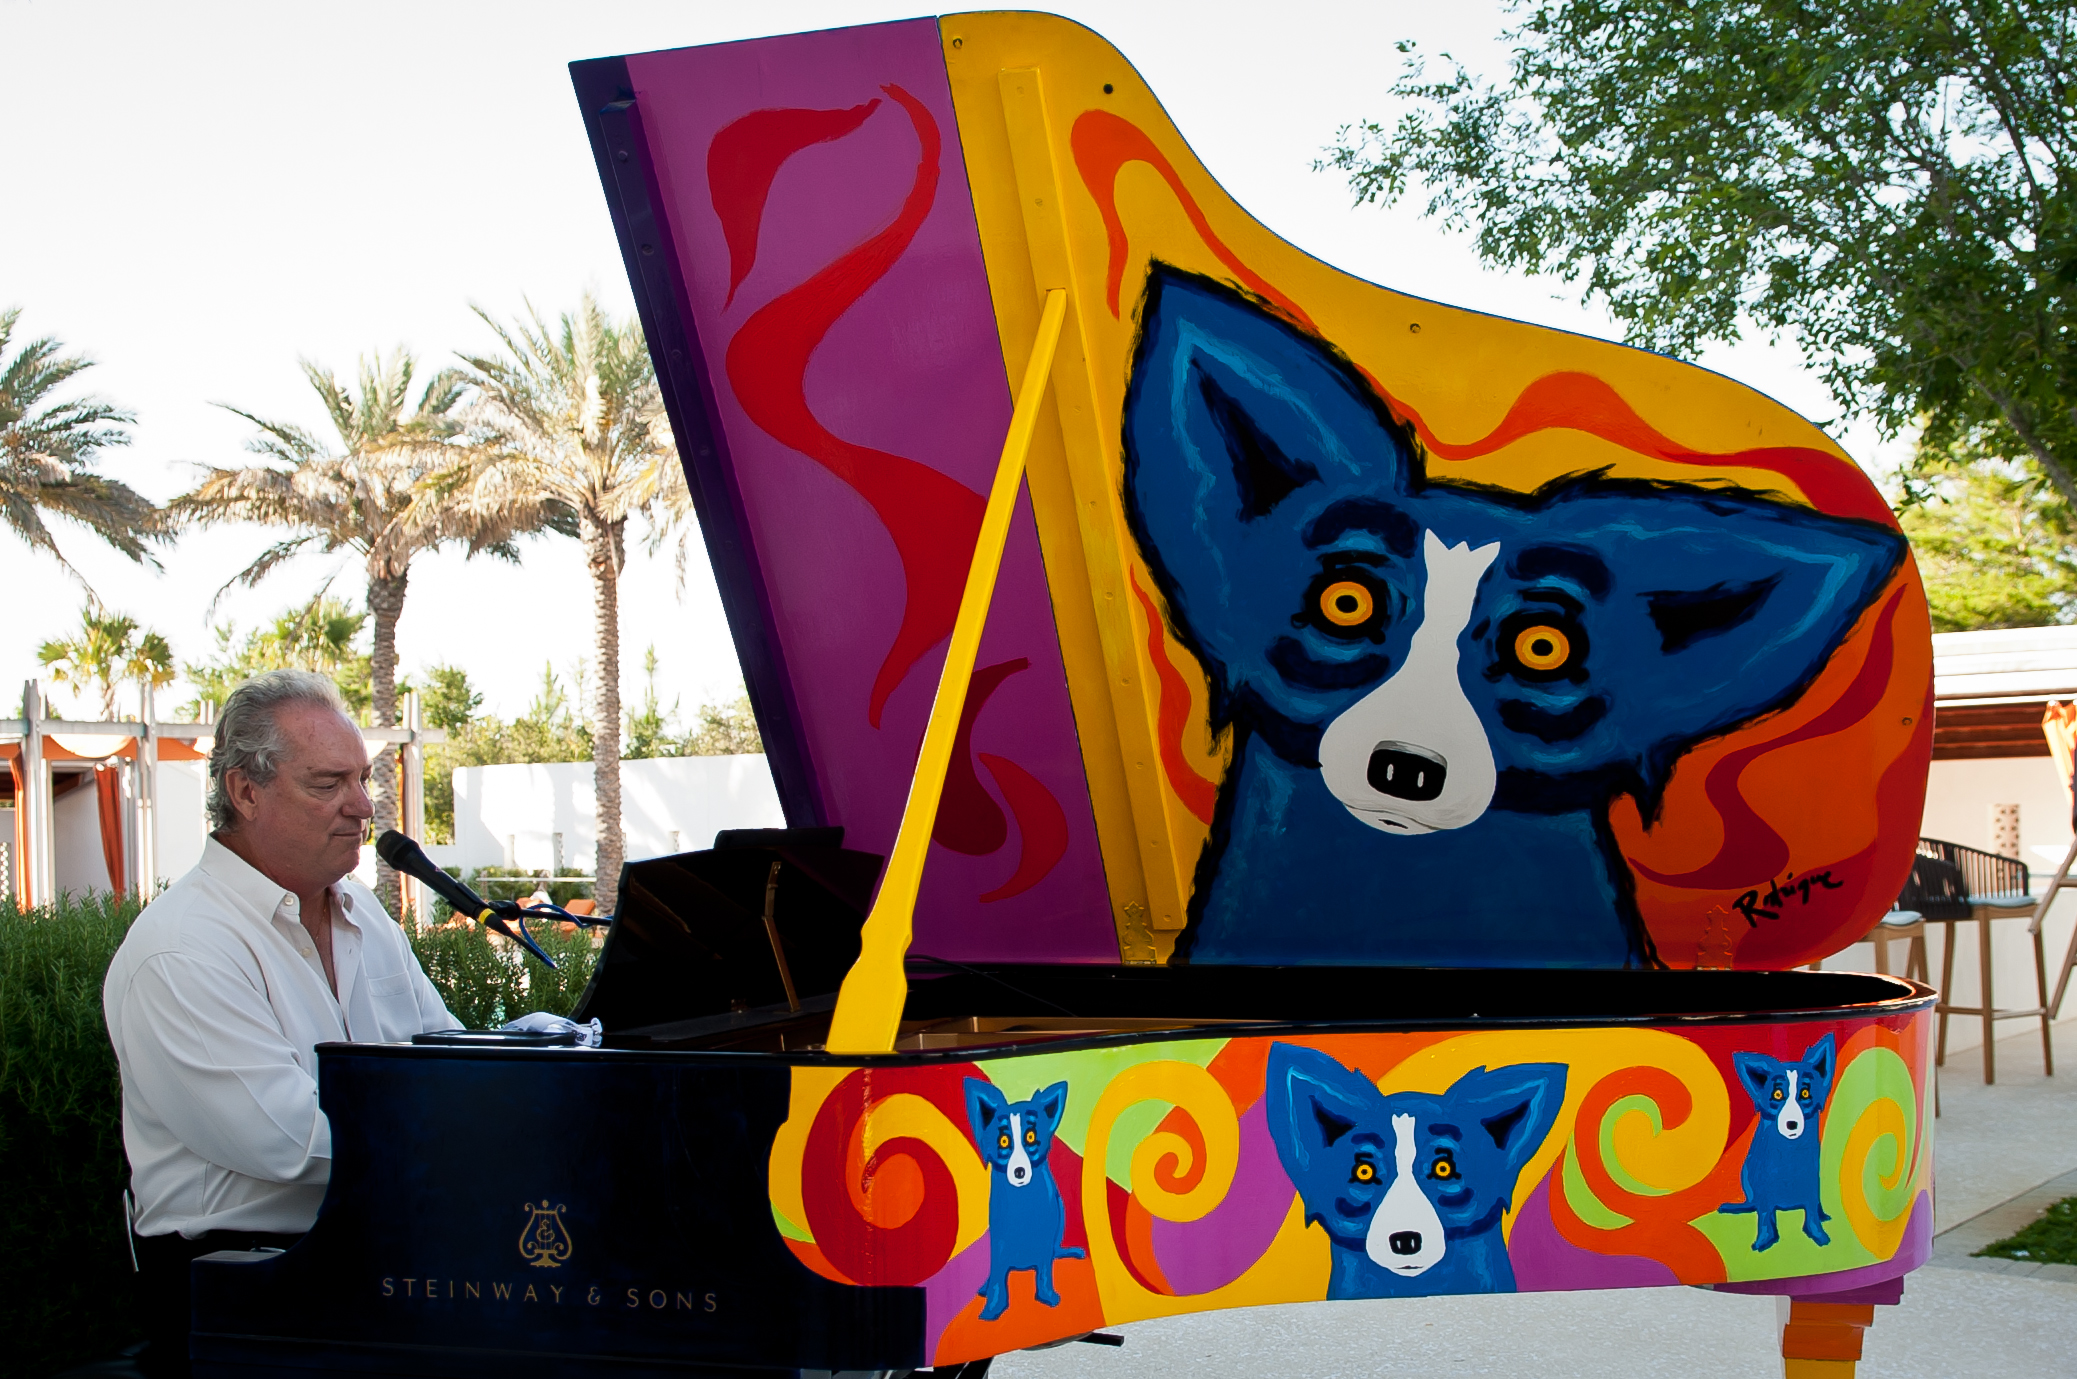 - David Seering entertains guests at The George Rodrigue Steinway event following unveiling of the Rodrigue sculpture on opening night.